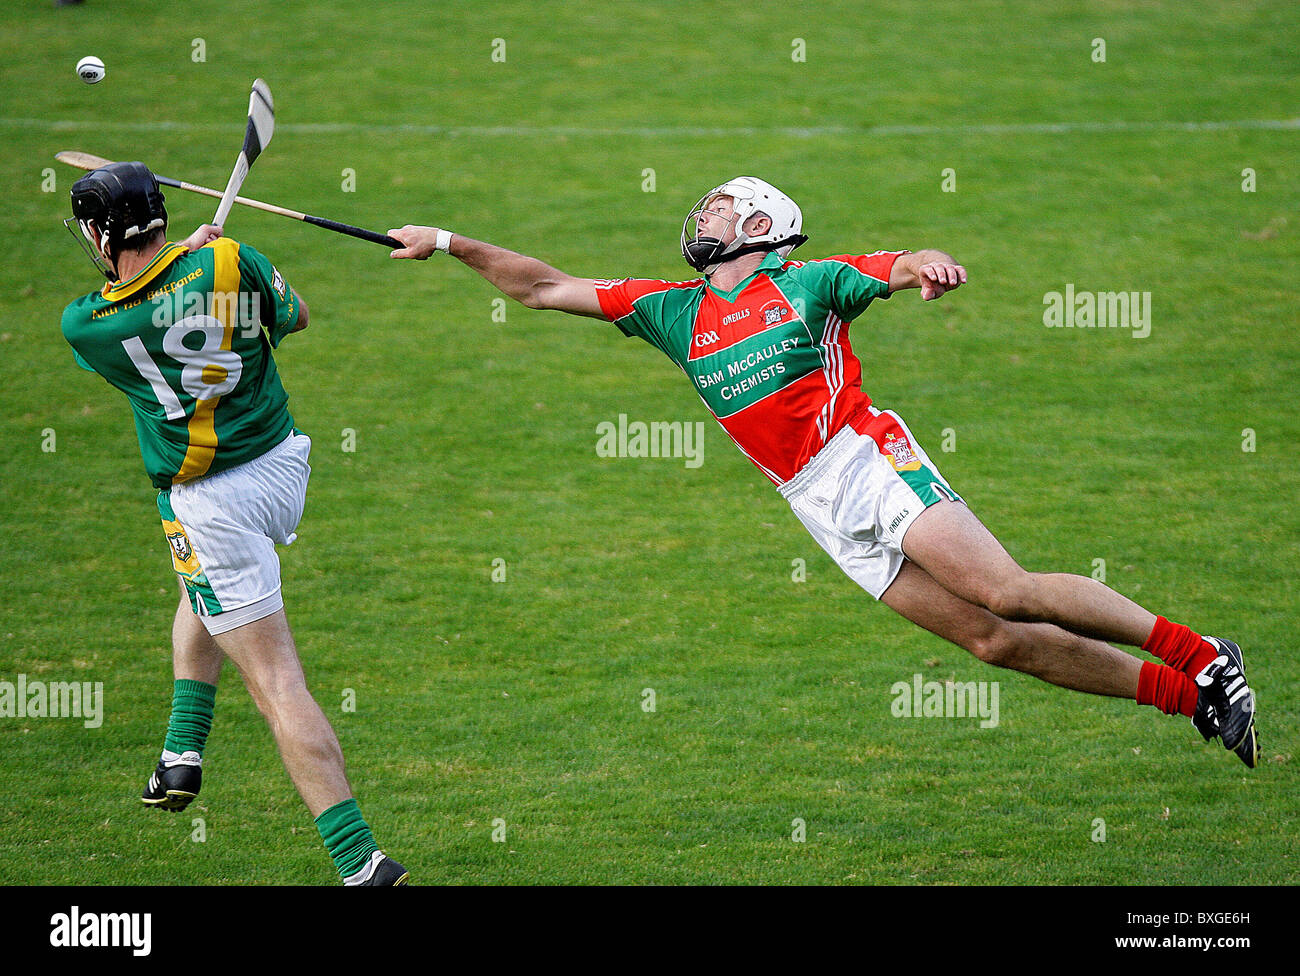 7fbbdddaccf2c Irish Sport Stock Photos & Irish Sport Stock Images - Alamy